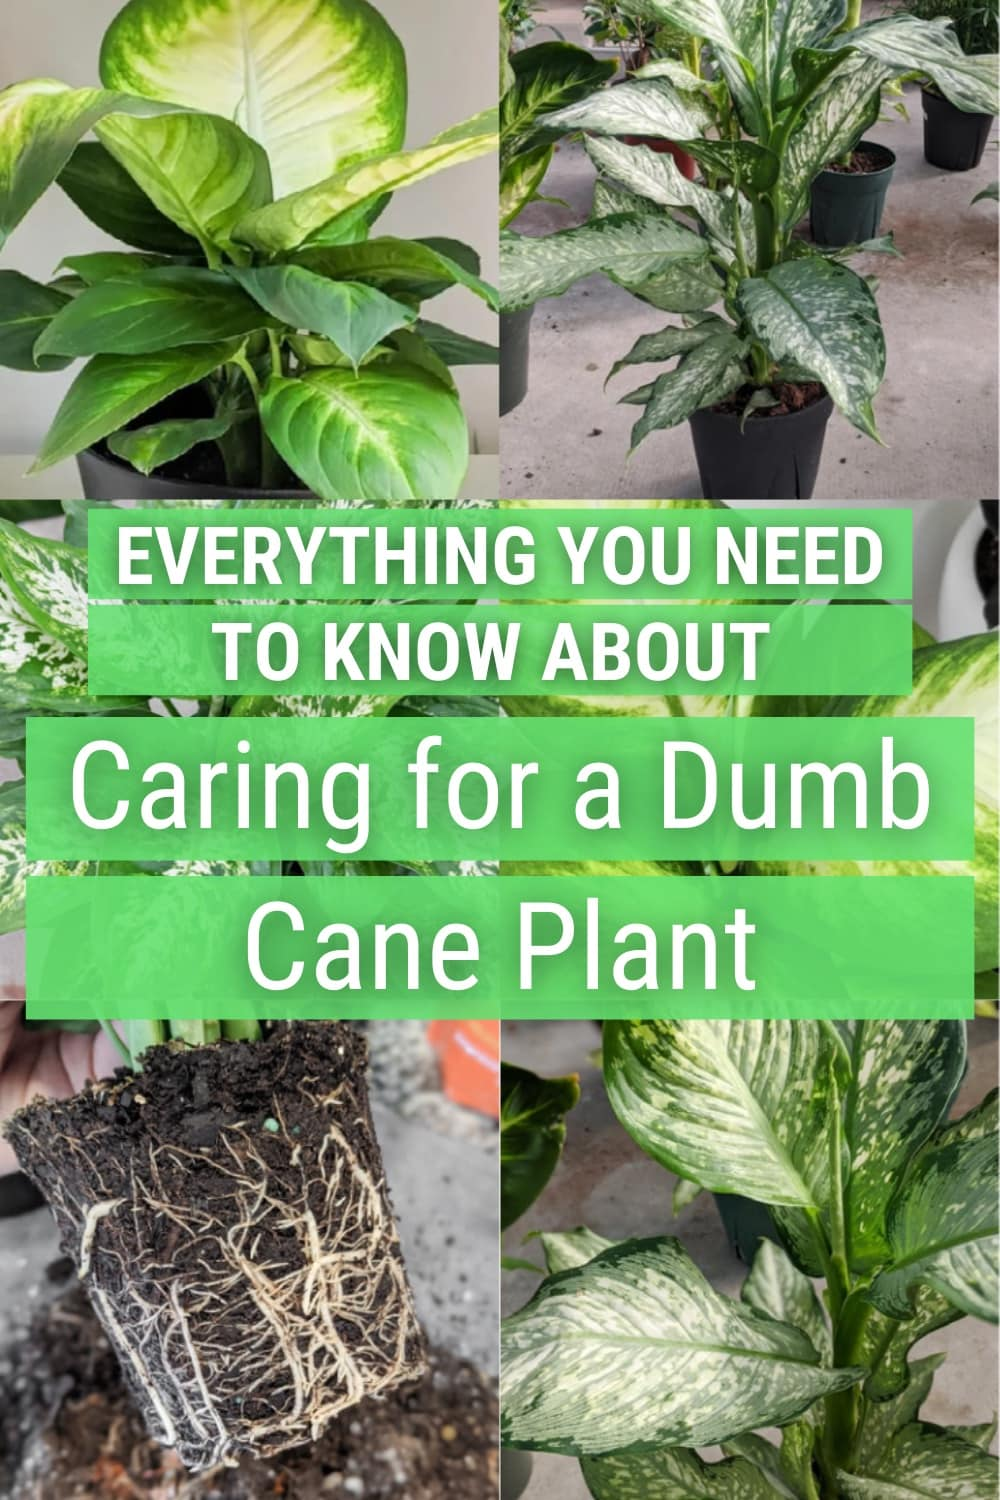 image collage of dumb cane with text Everyitng you need to know about caring for a dumb cane plant